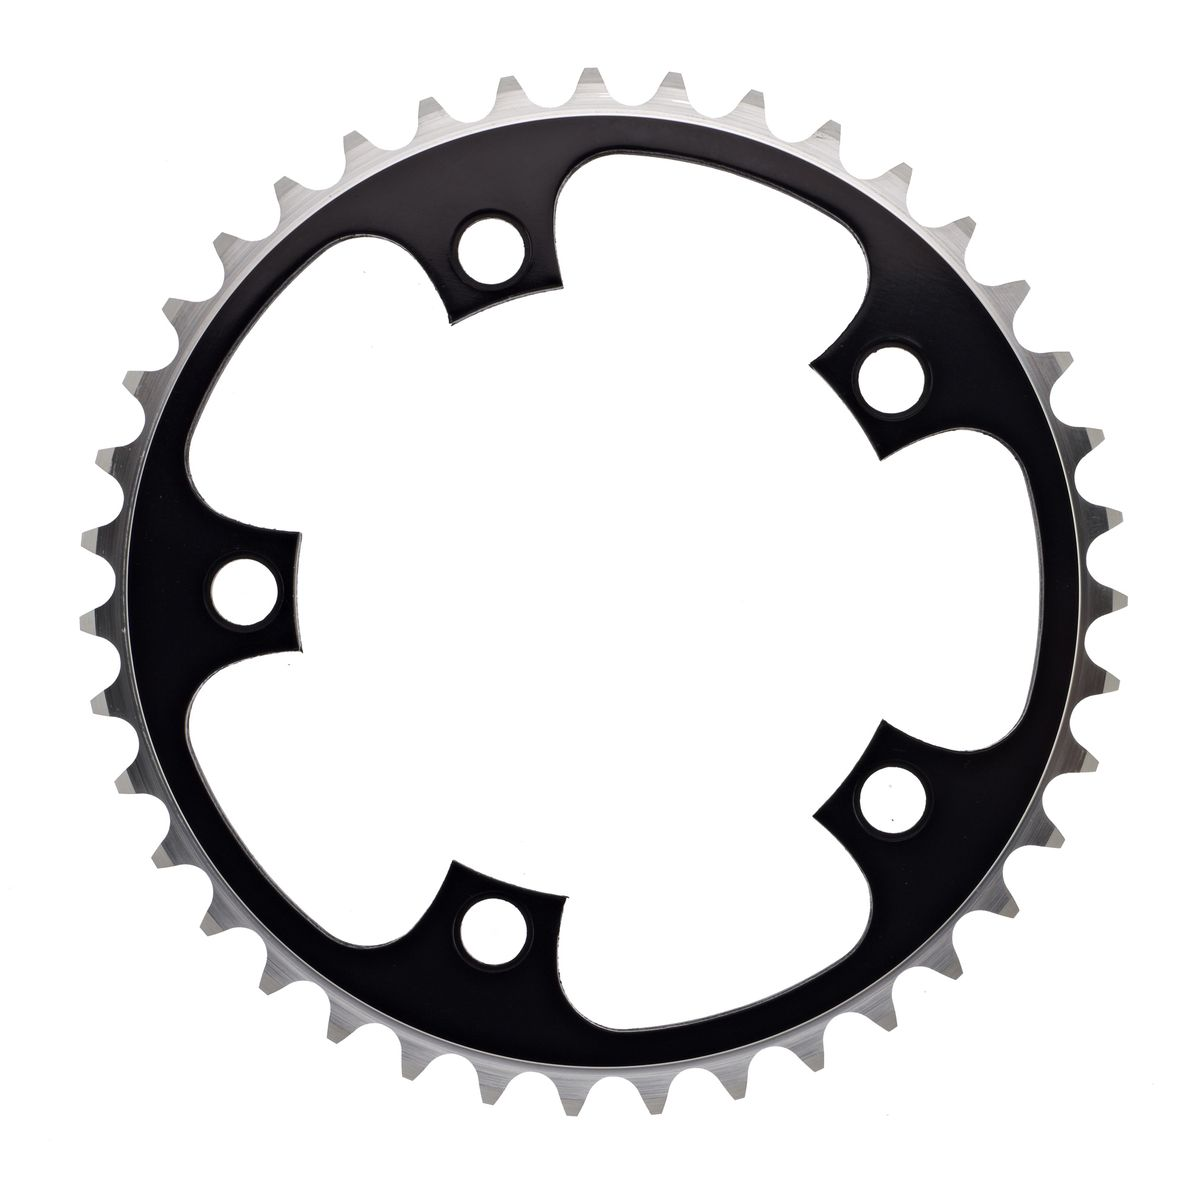 TA Zephyr 8-/9-/10-speed 39-tooth chainring | Klinger